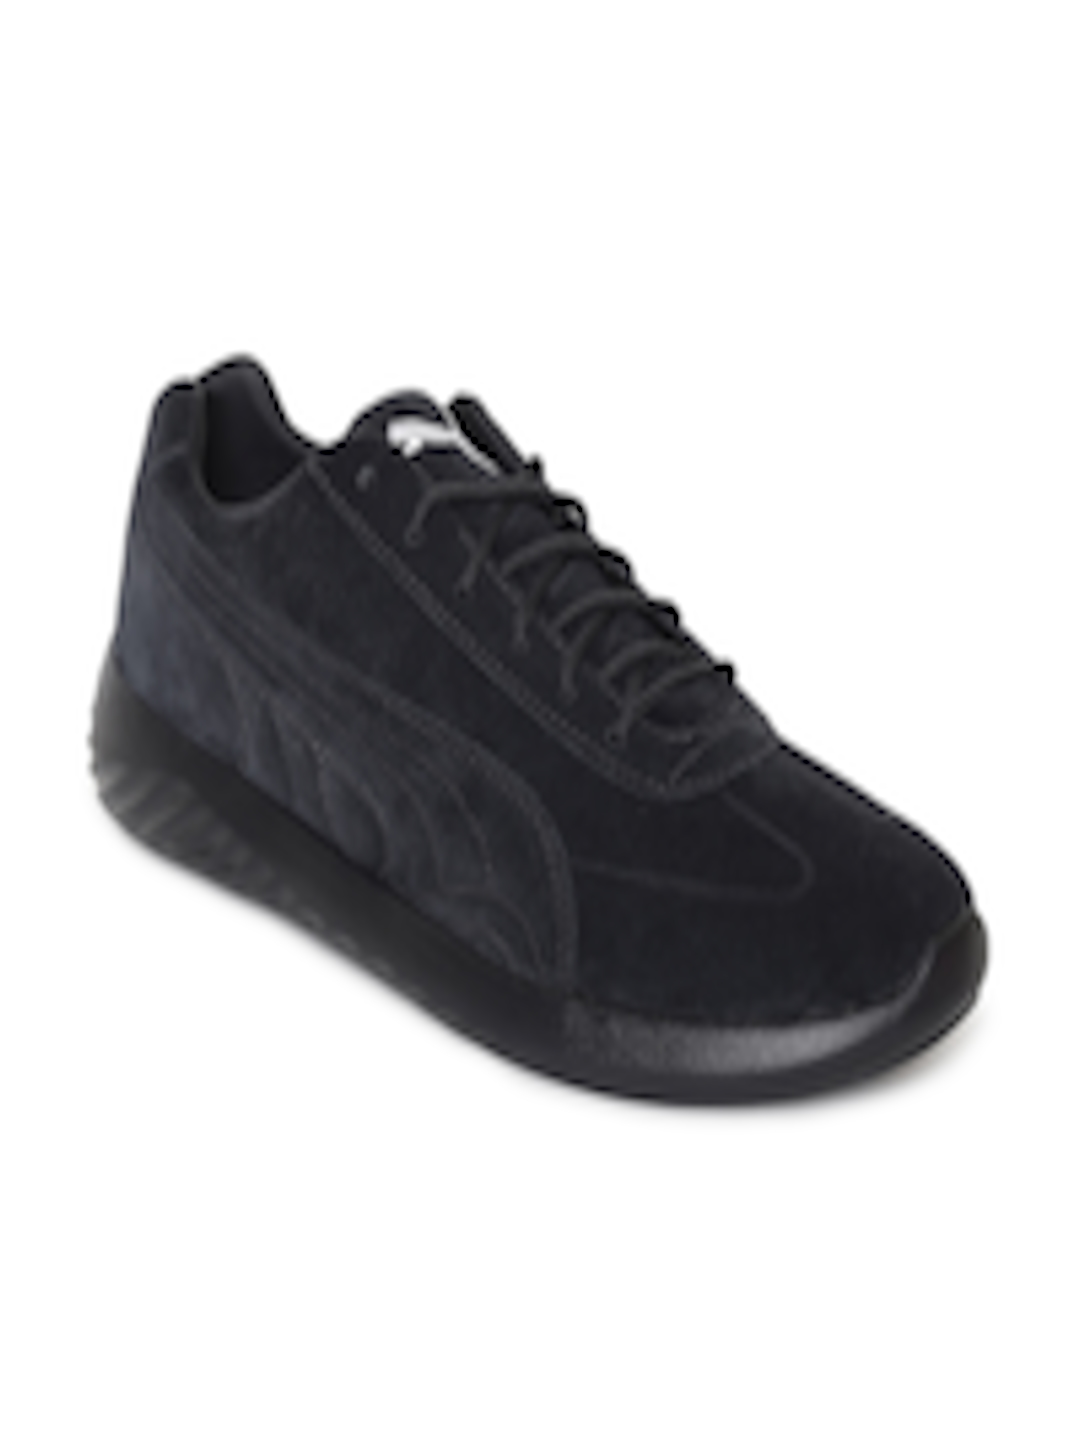 04c895b27669 Buy Puma Men Black Solid Suede BMW MS Speed Cat Evo Sneakers - Casual Shoes  for Men 7188906